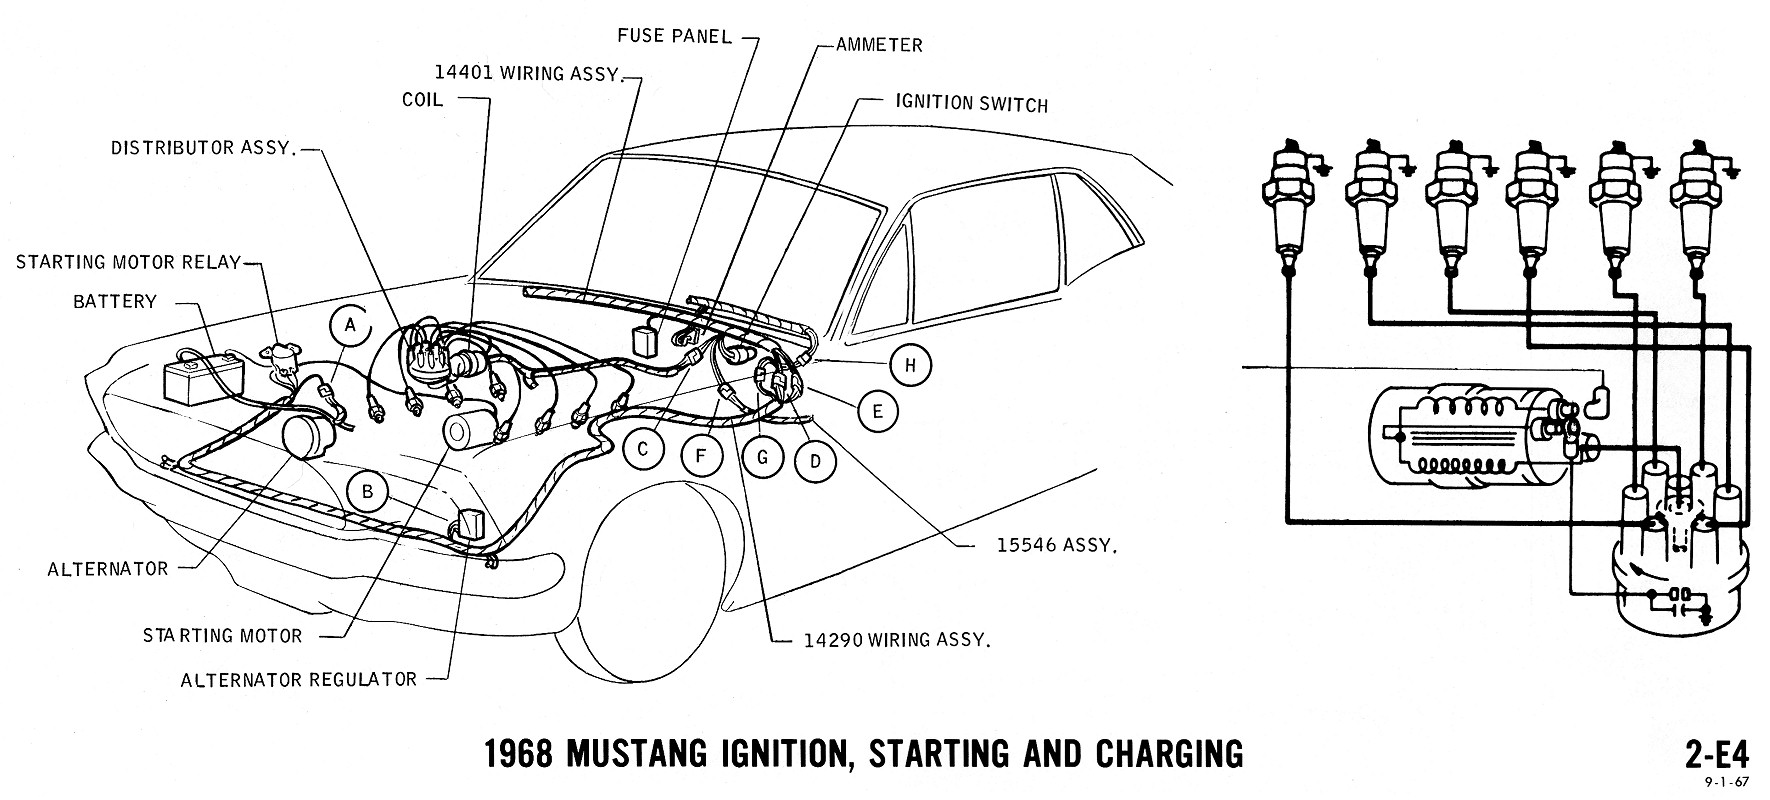 1968 Mustang Wiring Diagram Vacuum Schematics on mgb distributor wiring